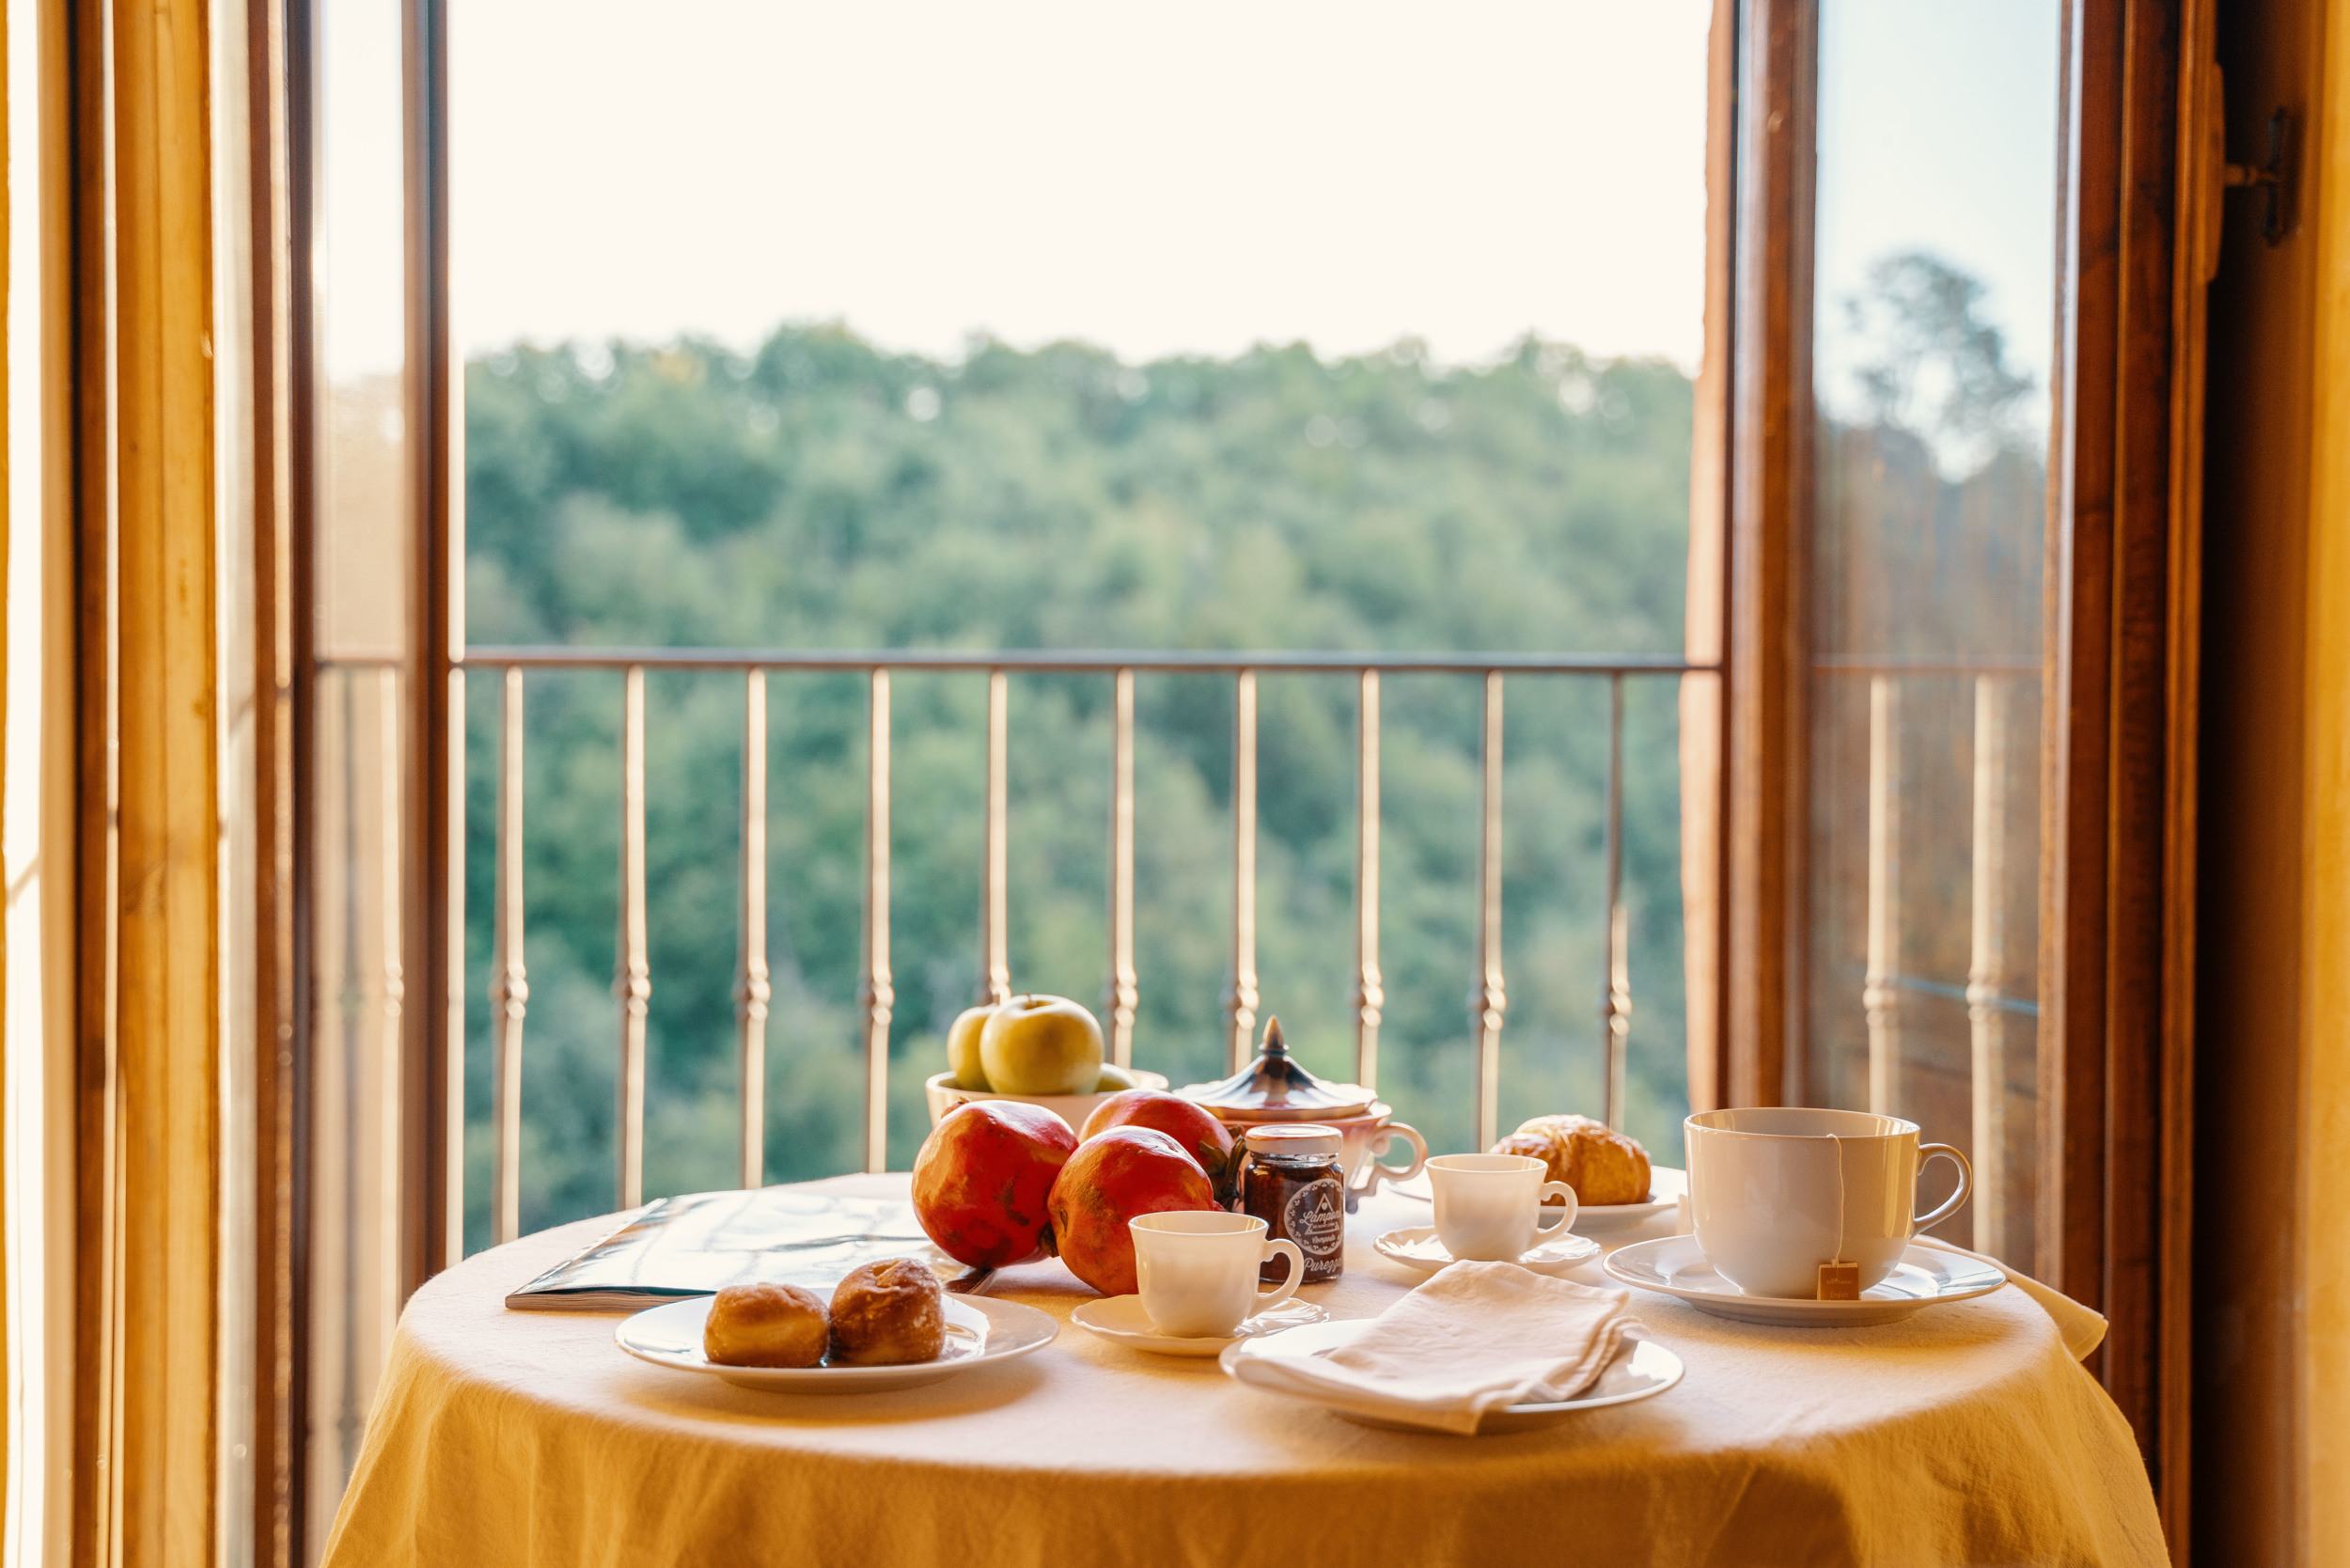 Breakfast table with chestnut forest view.